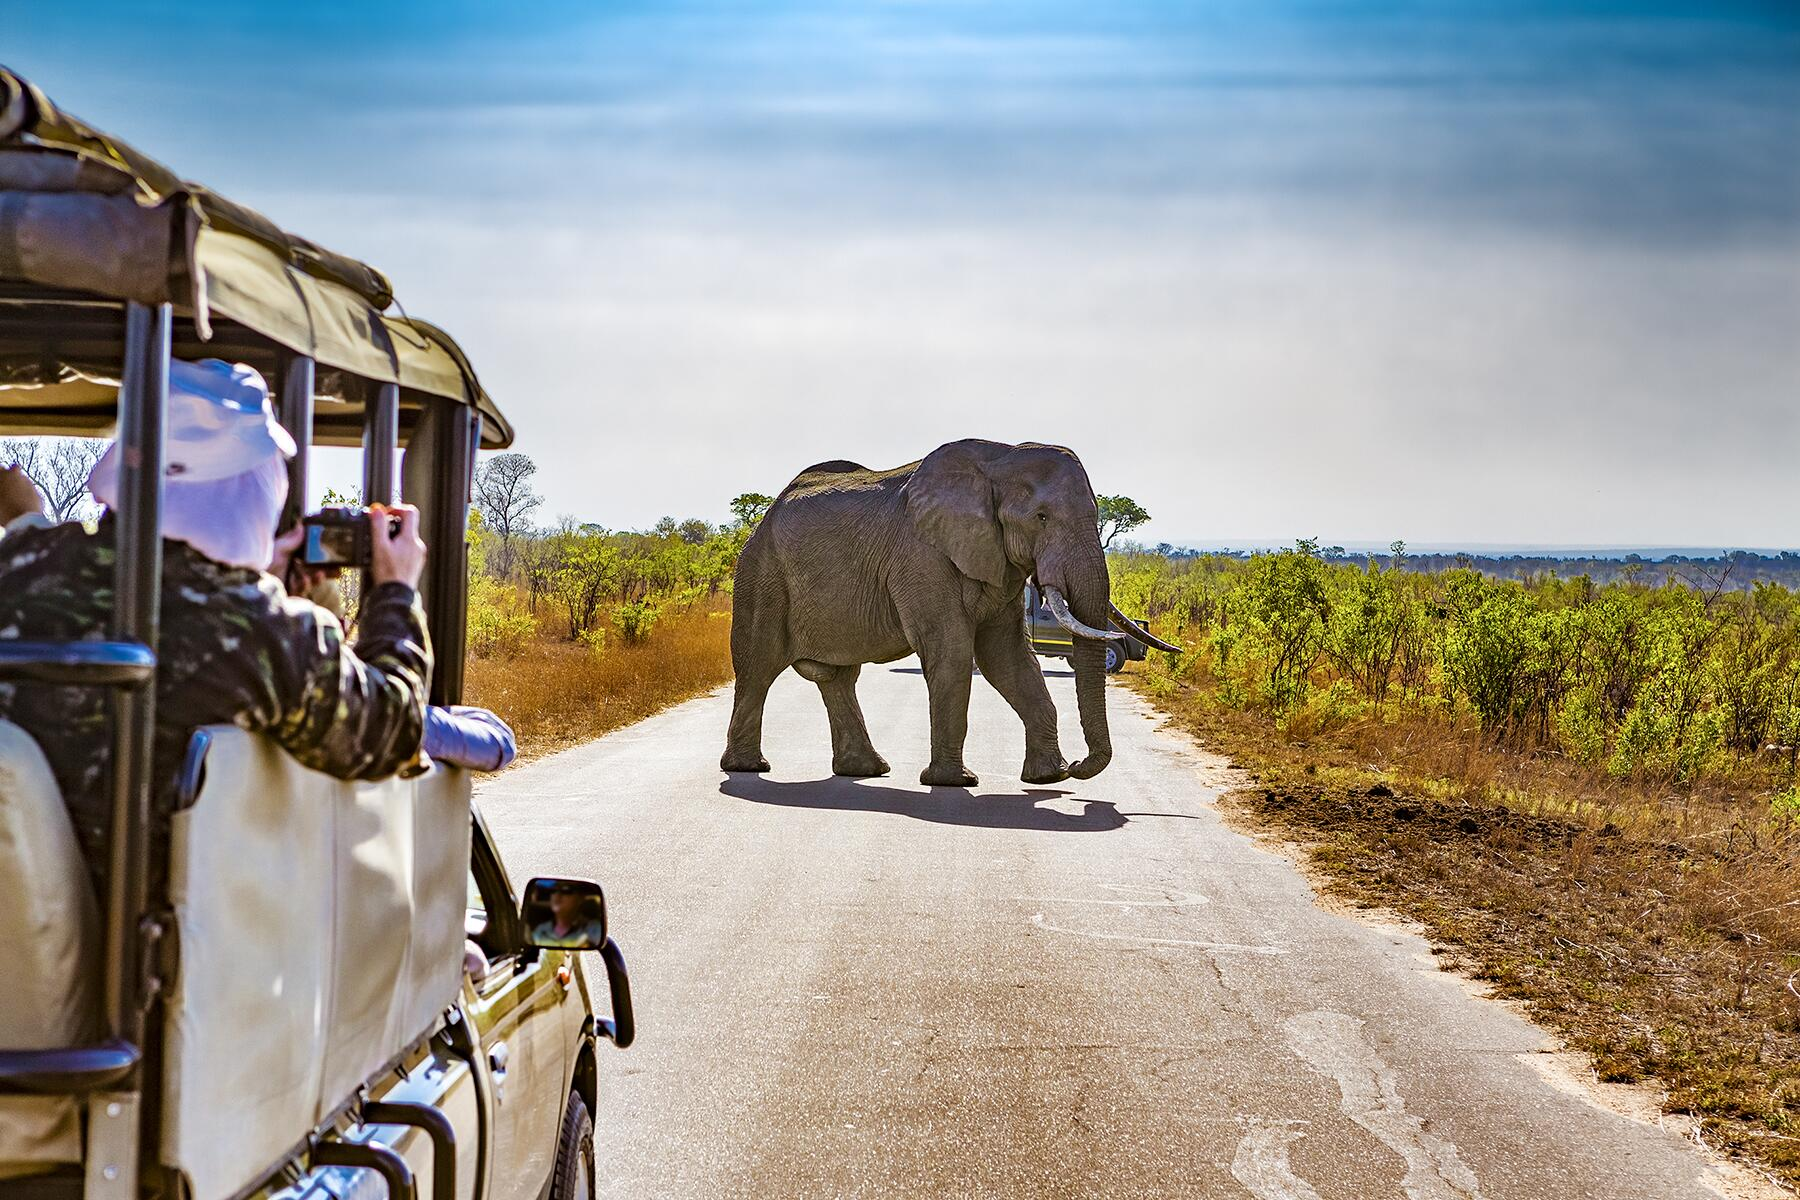 How Safaris Have Transformed From Game Hunts to Conservation-Based Vacations